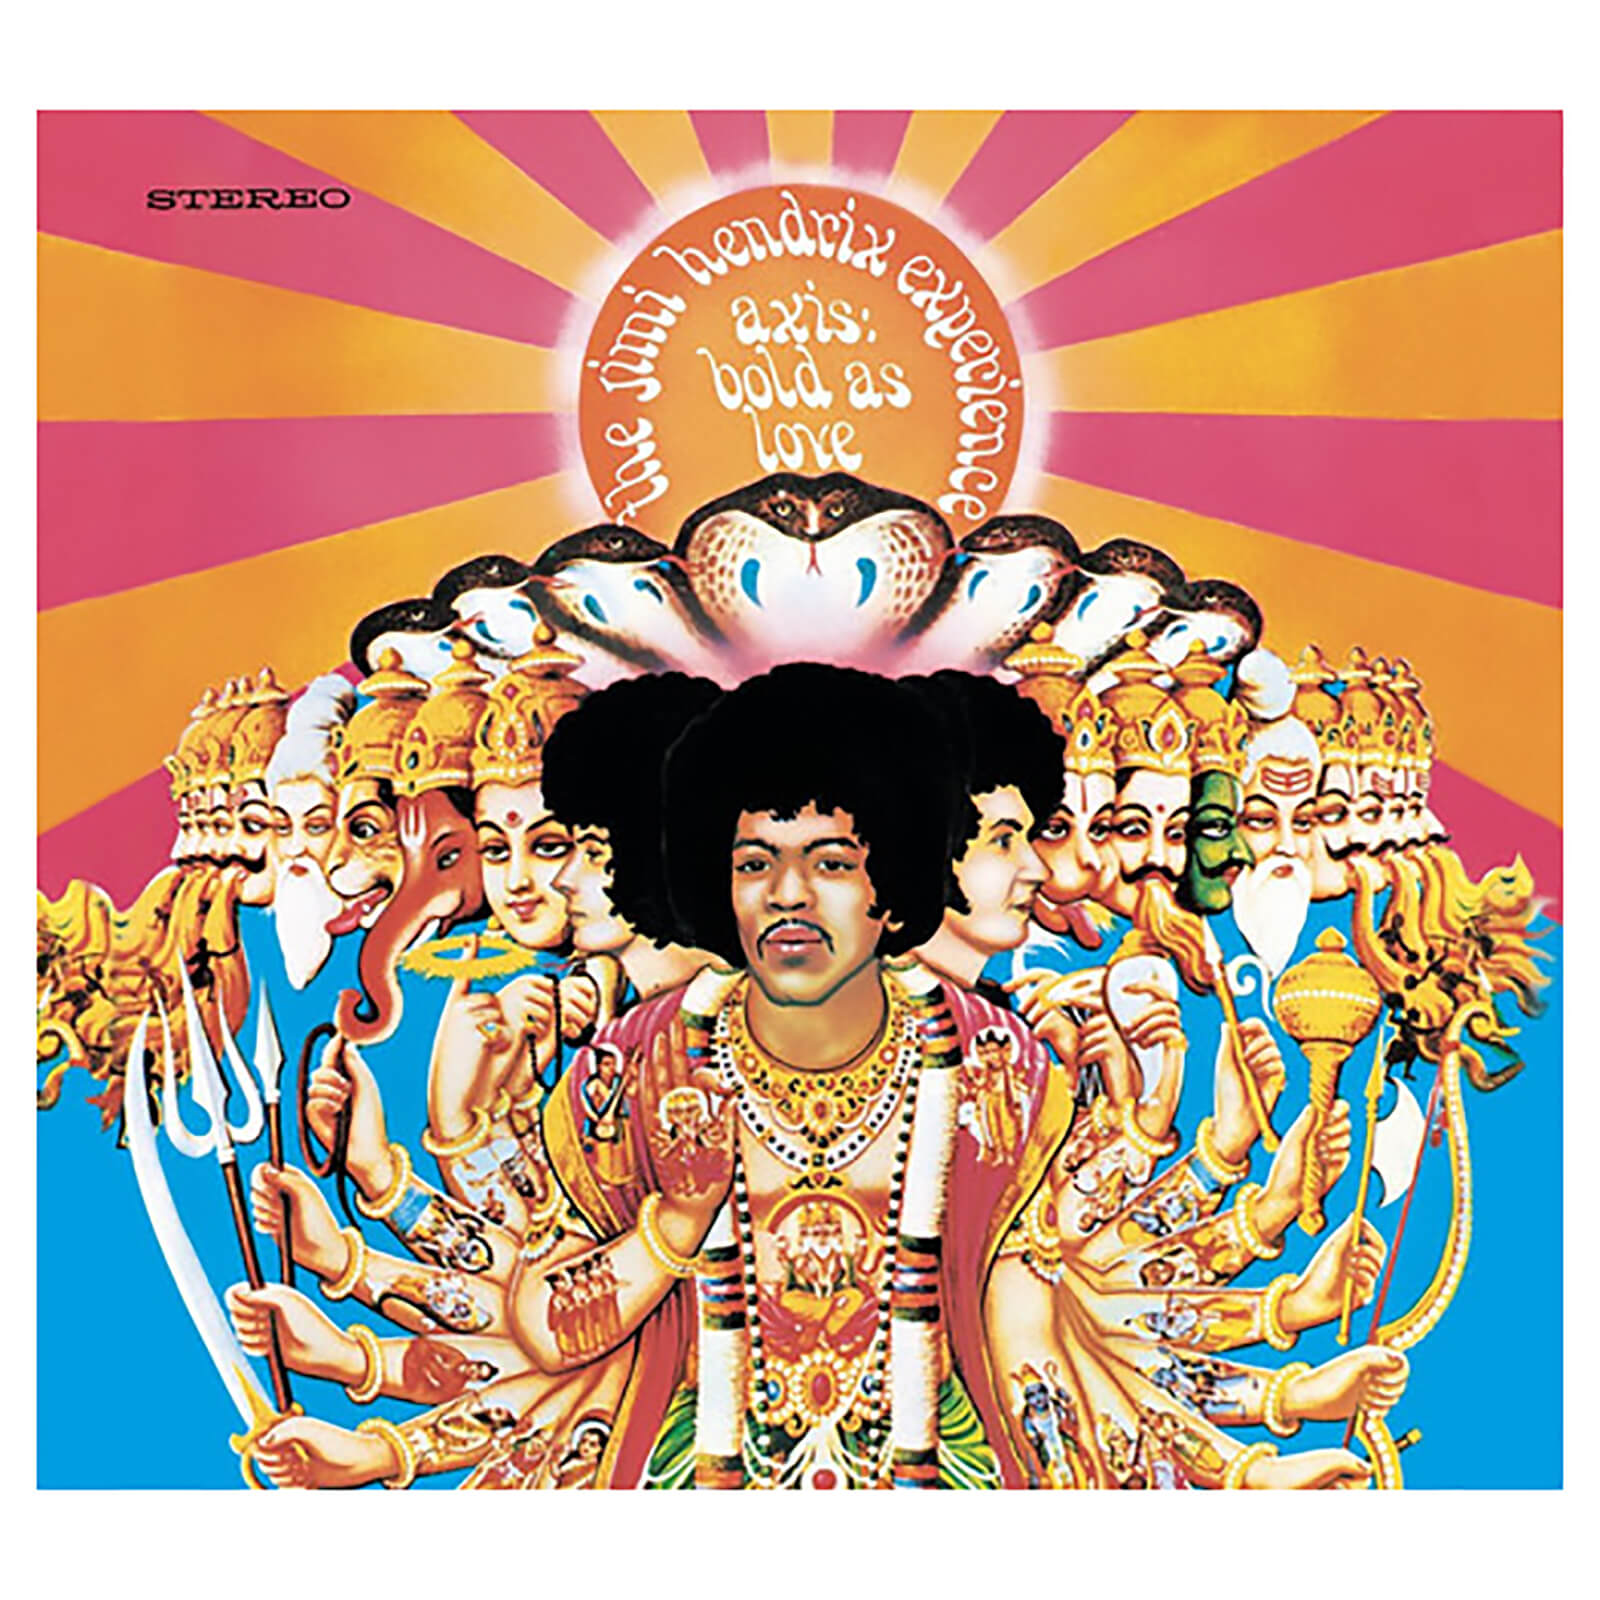 Jimi Hendrix - Axis: Bold As Love - Vinyl